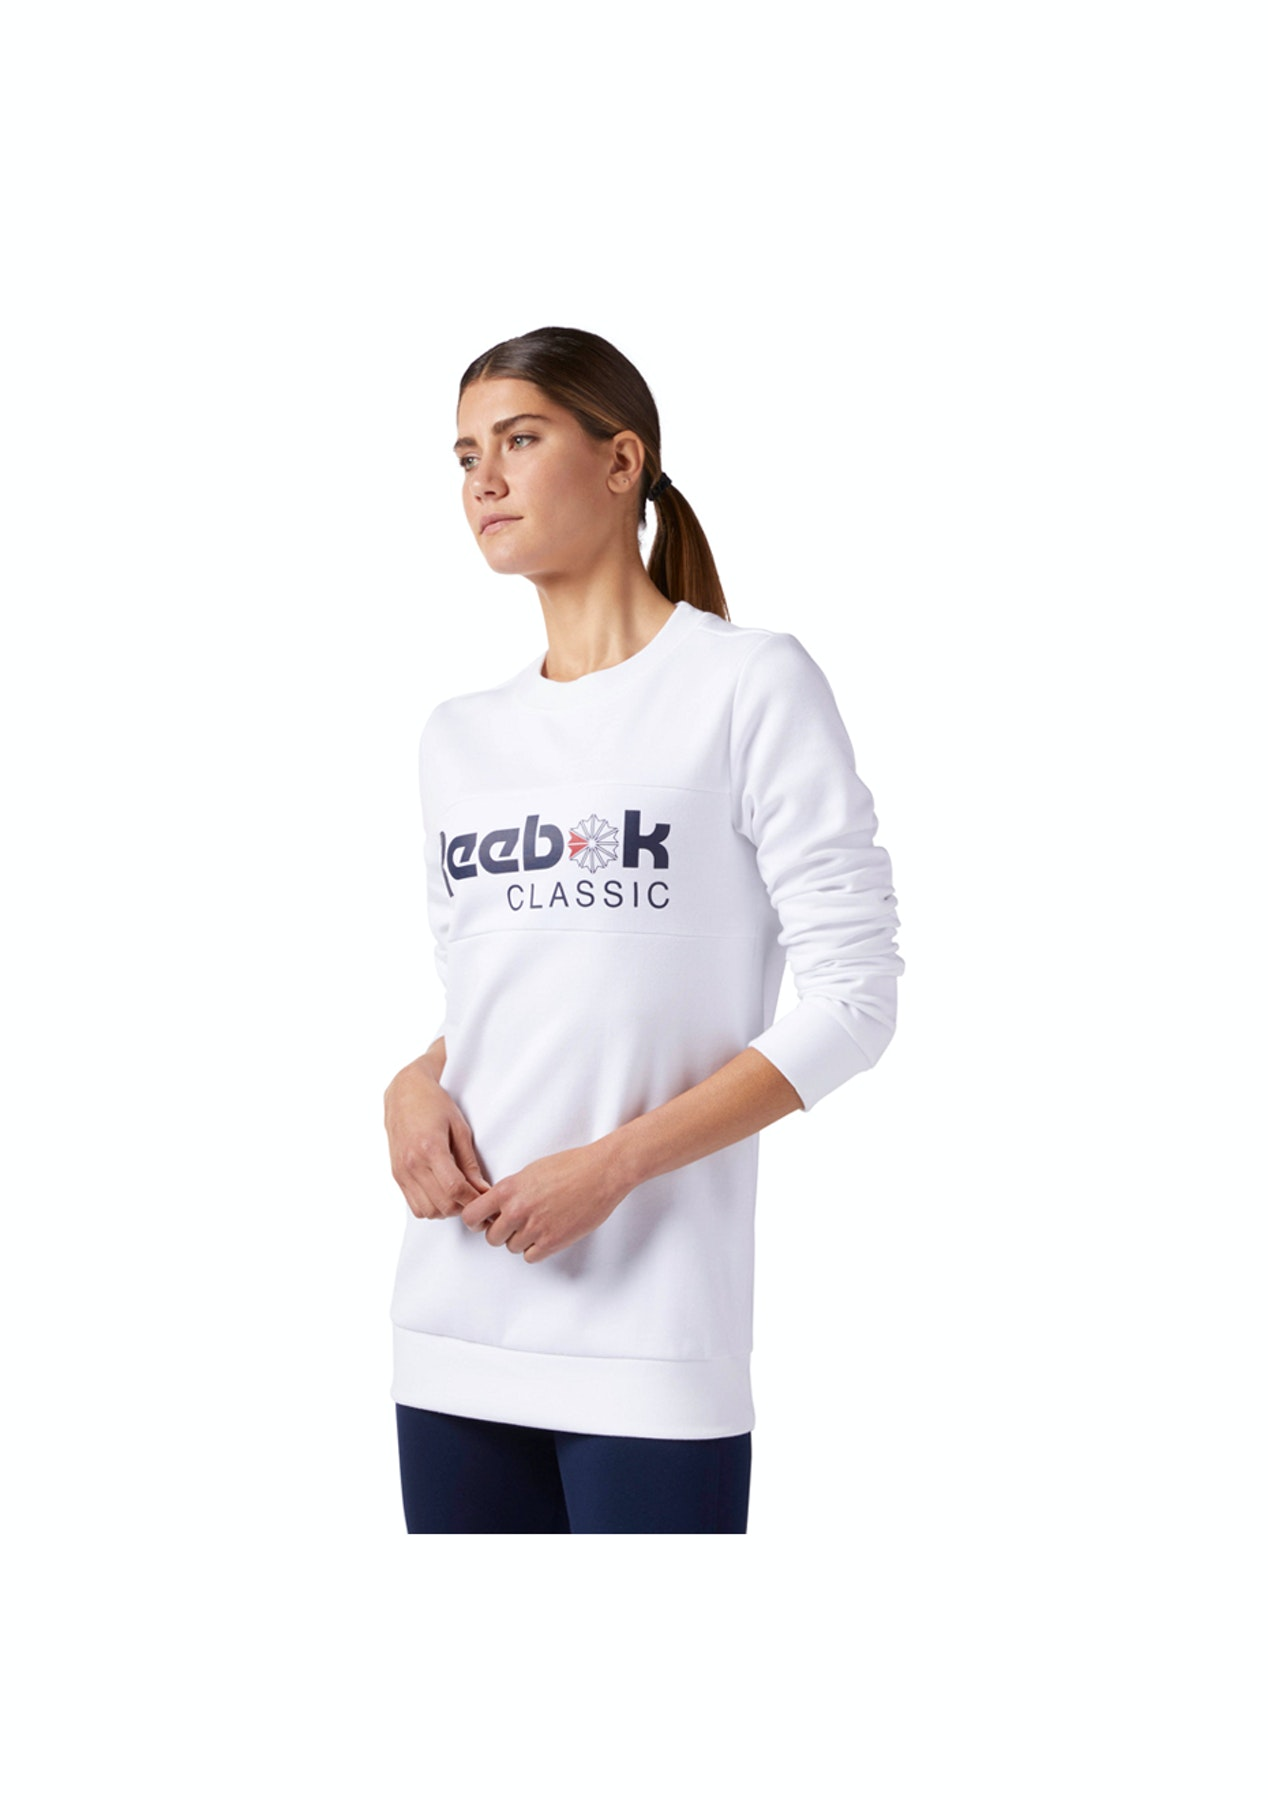 4218d1d0d91f Reebok Womens - F Iconic Crew - White - Reebok - Onceit